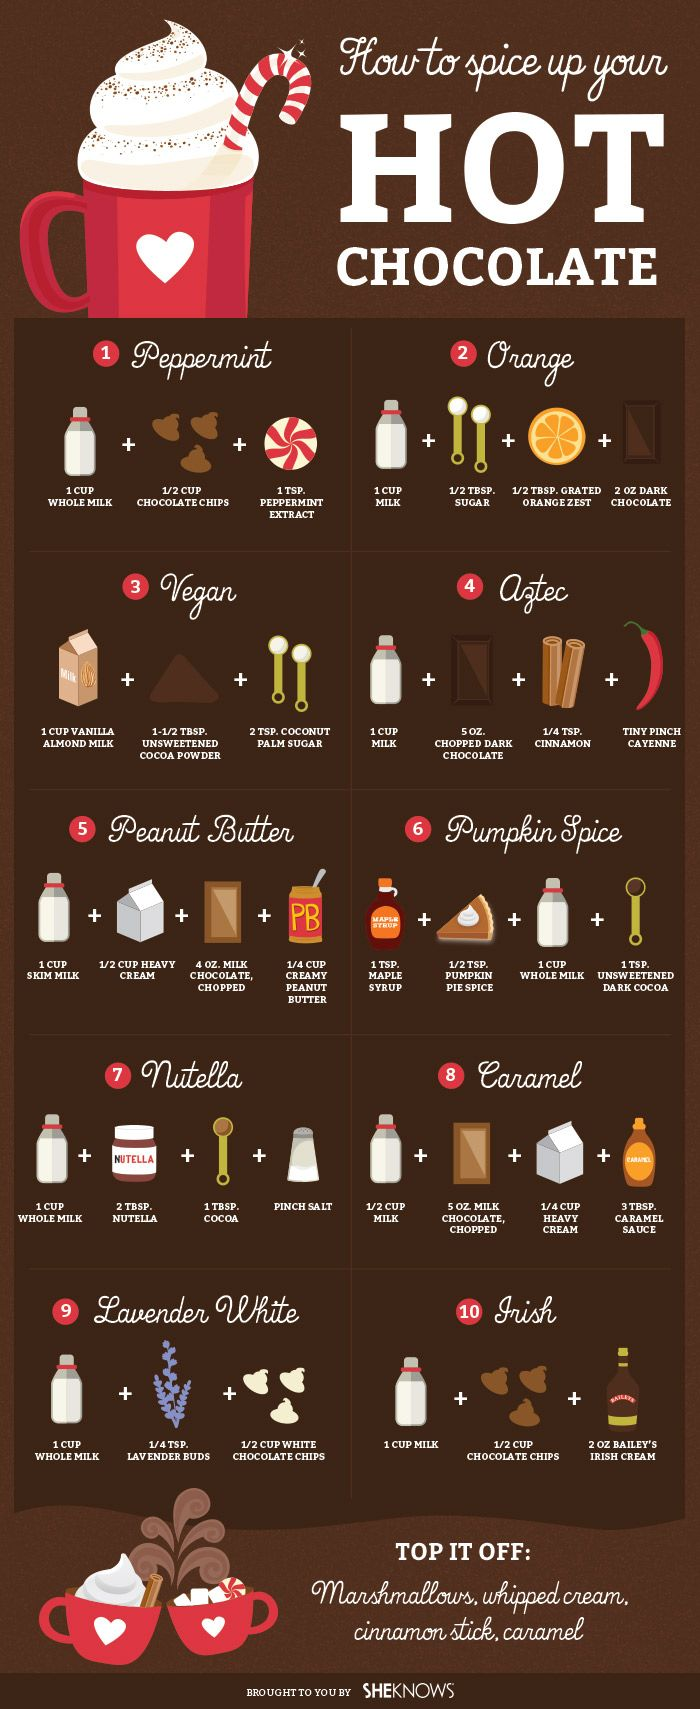 The Most Delicious Way To Spice Up Your Hot Chocolate This Holiday Season ~ December 3rd is National Hot Cocoa Day!